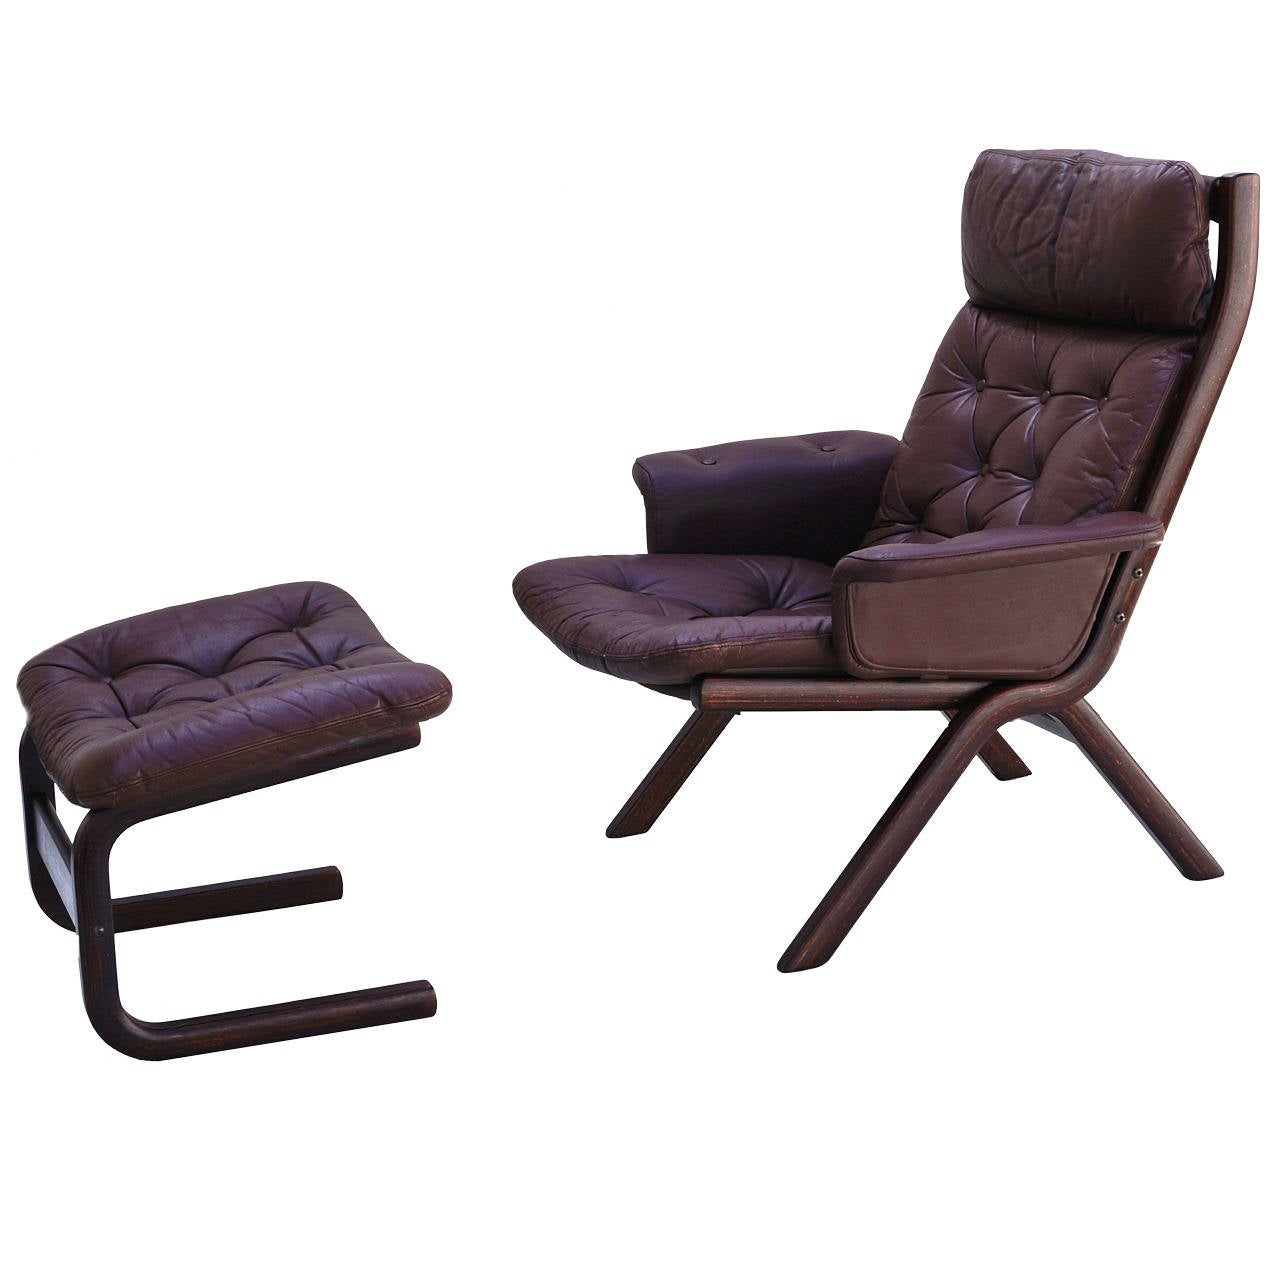 modern leather lounge chair raffia dining chairs danish sculptural sling and